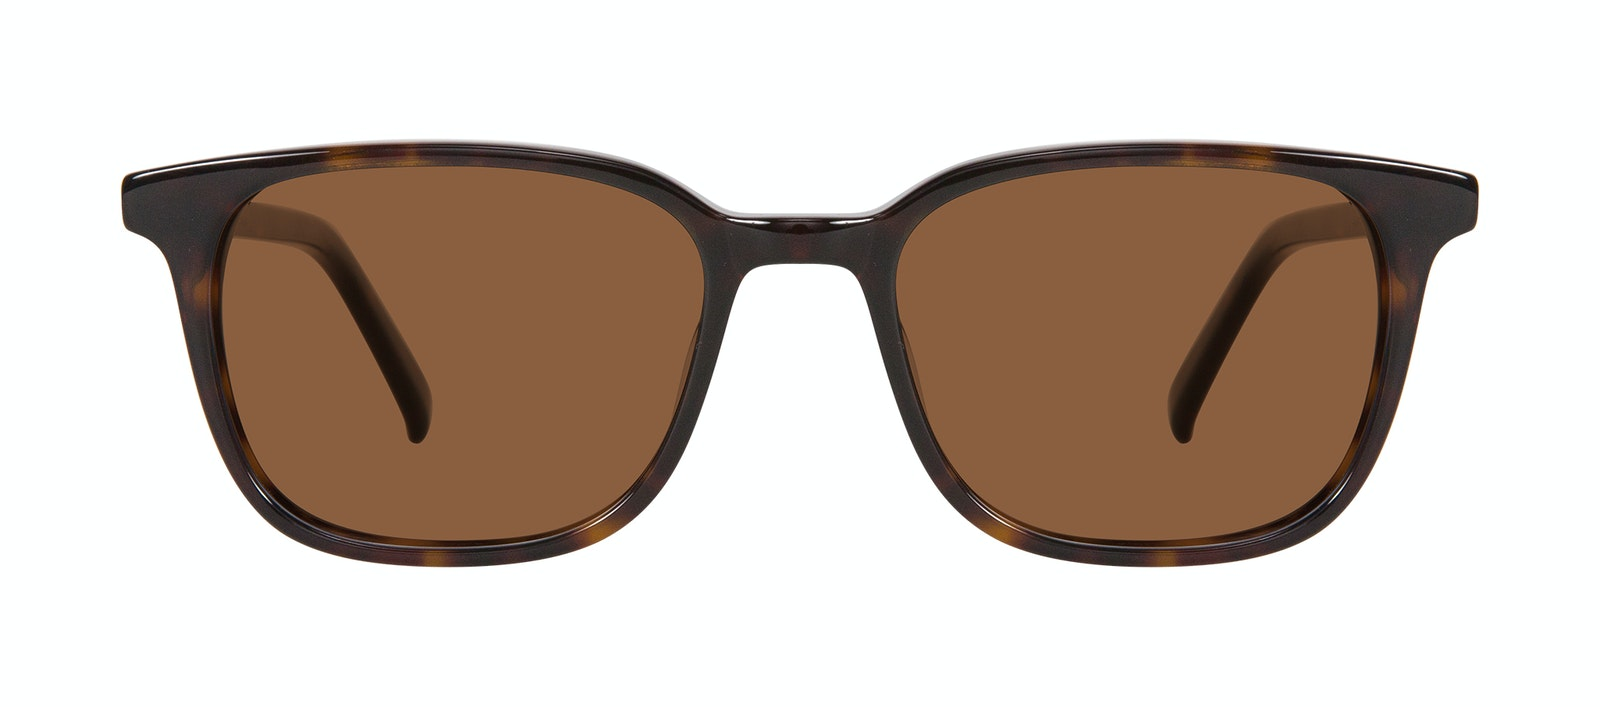 Affordable Fashion Glasses Square Sunglasses Men Choice Tortoise Front